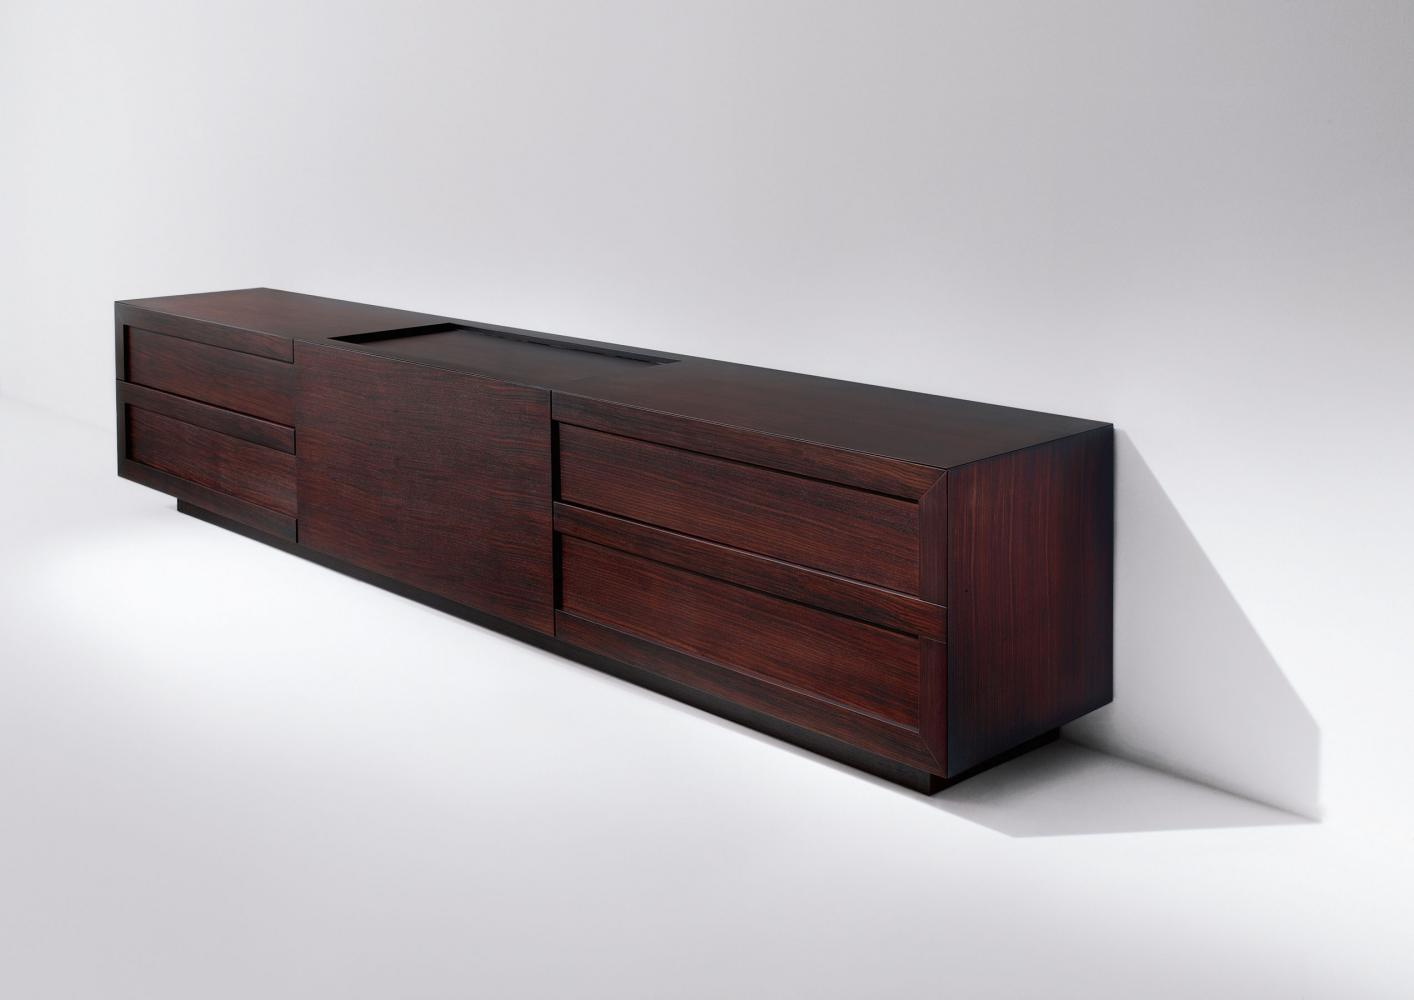 Custom made modern design sideboard in reosewood natural wood